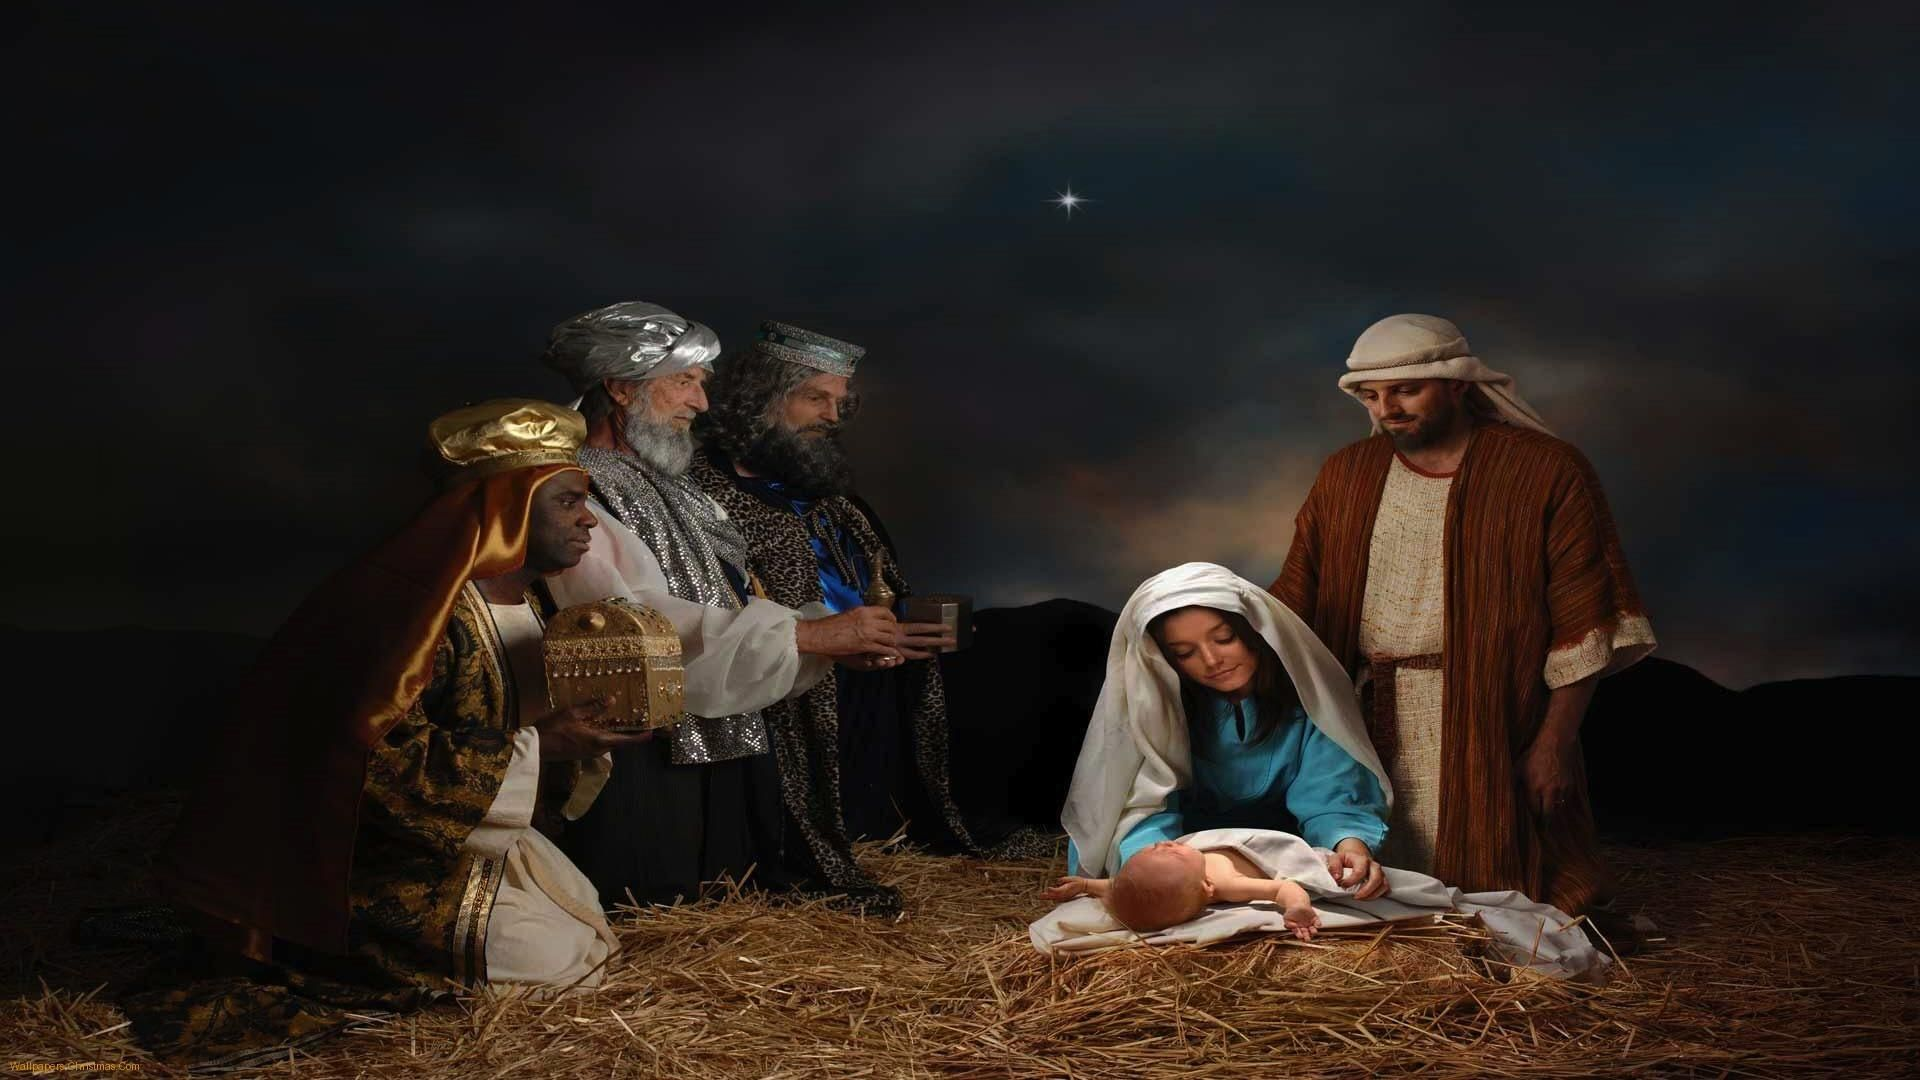 The True Meaning Of Christmas Wallpapers HD Free 256780